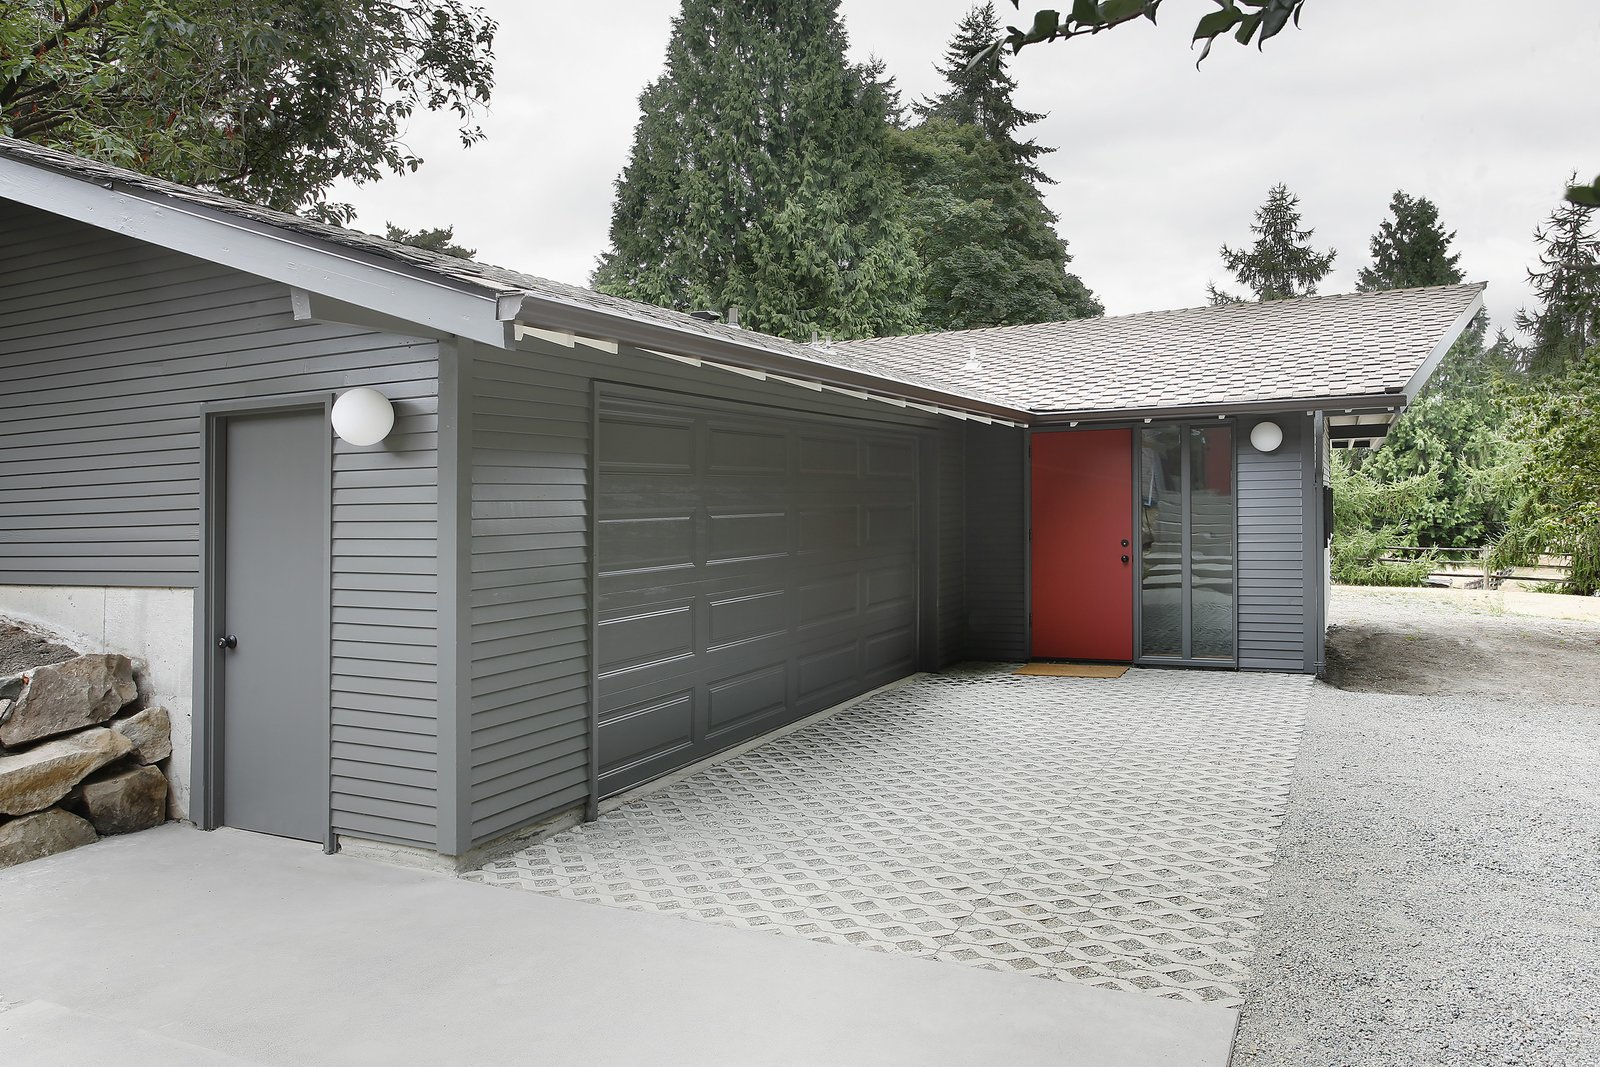 """Exterior, House Building Type, Shingles Roof Material, Wood Siding Material, and Gable RoofLine """"The stable/garage was built with two intersecting gable roof forms,"""" Schaer says, which didn't match up with the inteiror spaces within. """"In order to provide a unified, singular main space, we dropped a flat ceiling at the entrance and linked it up with the main gable visible from the street.""""  Horse Stable Studio by Kelly Dawson"""